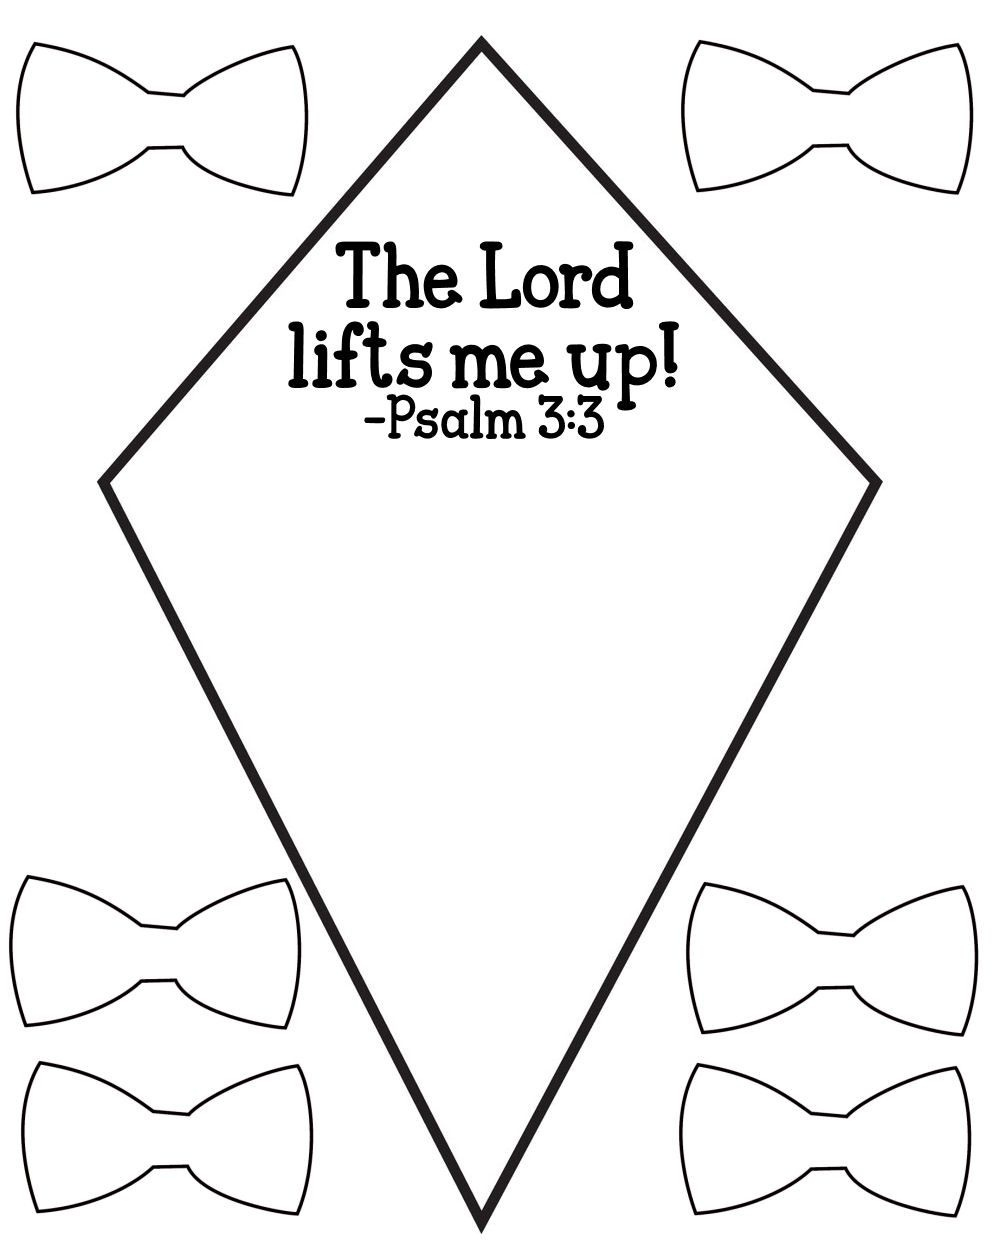 Free Psalm 3:3 Kids Bible Lesson Activity Printables - Free Printable Bible Crafts For Preschoolers